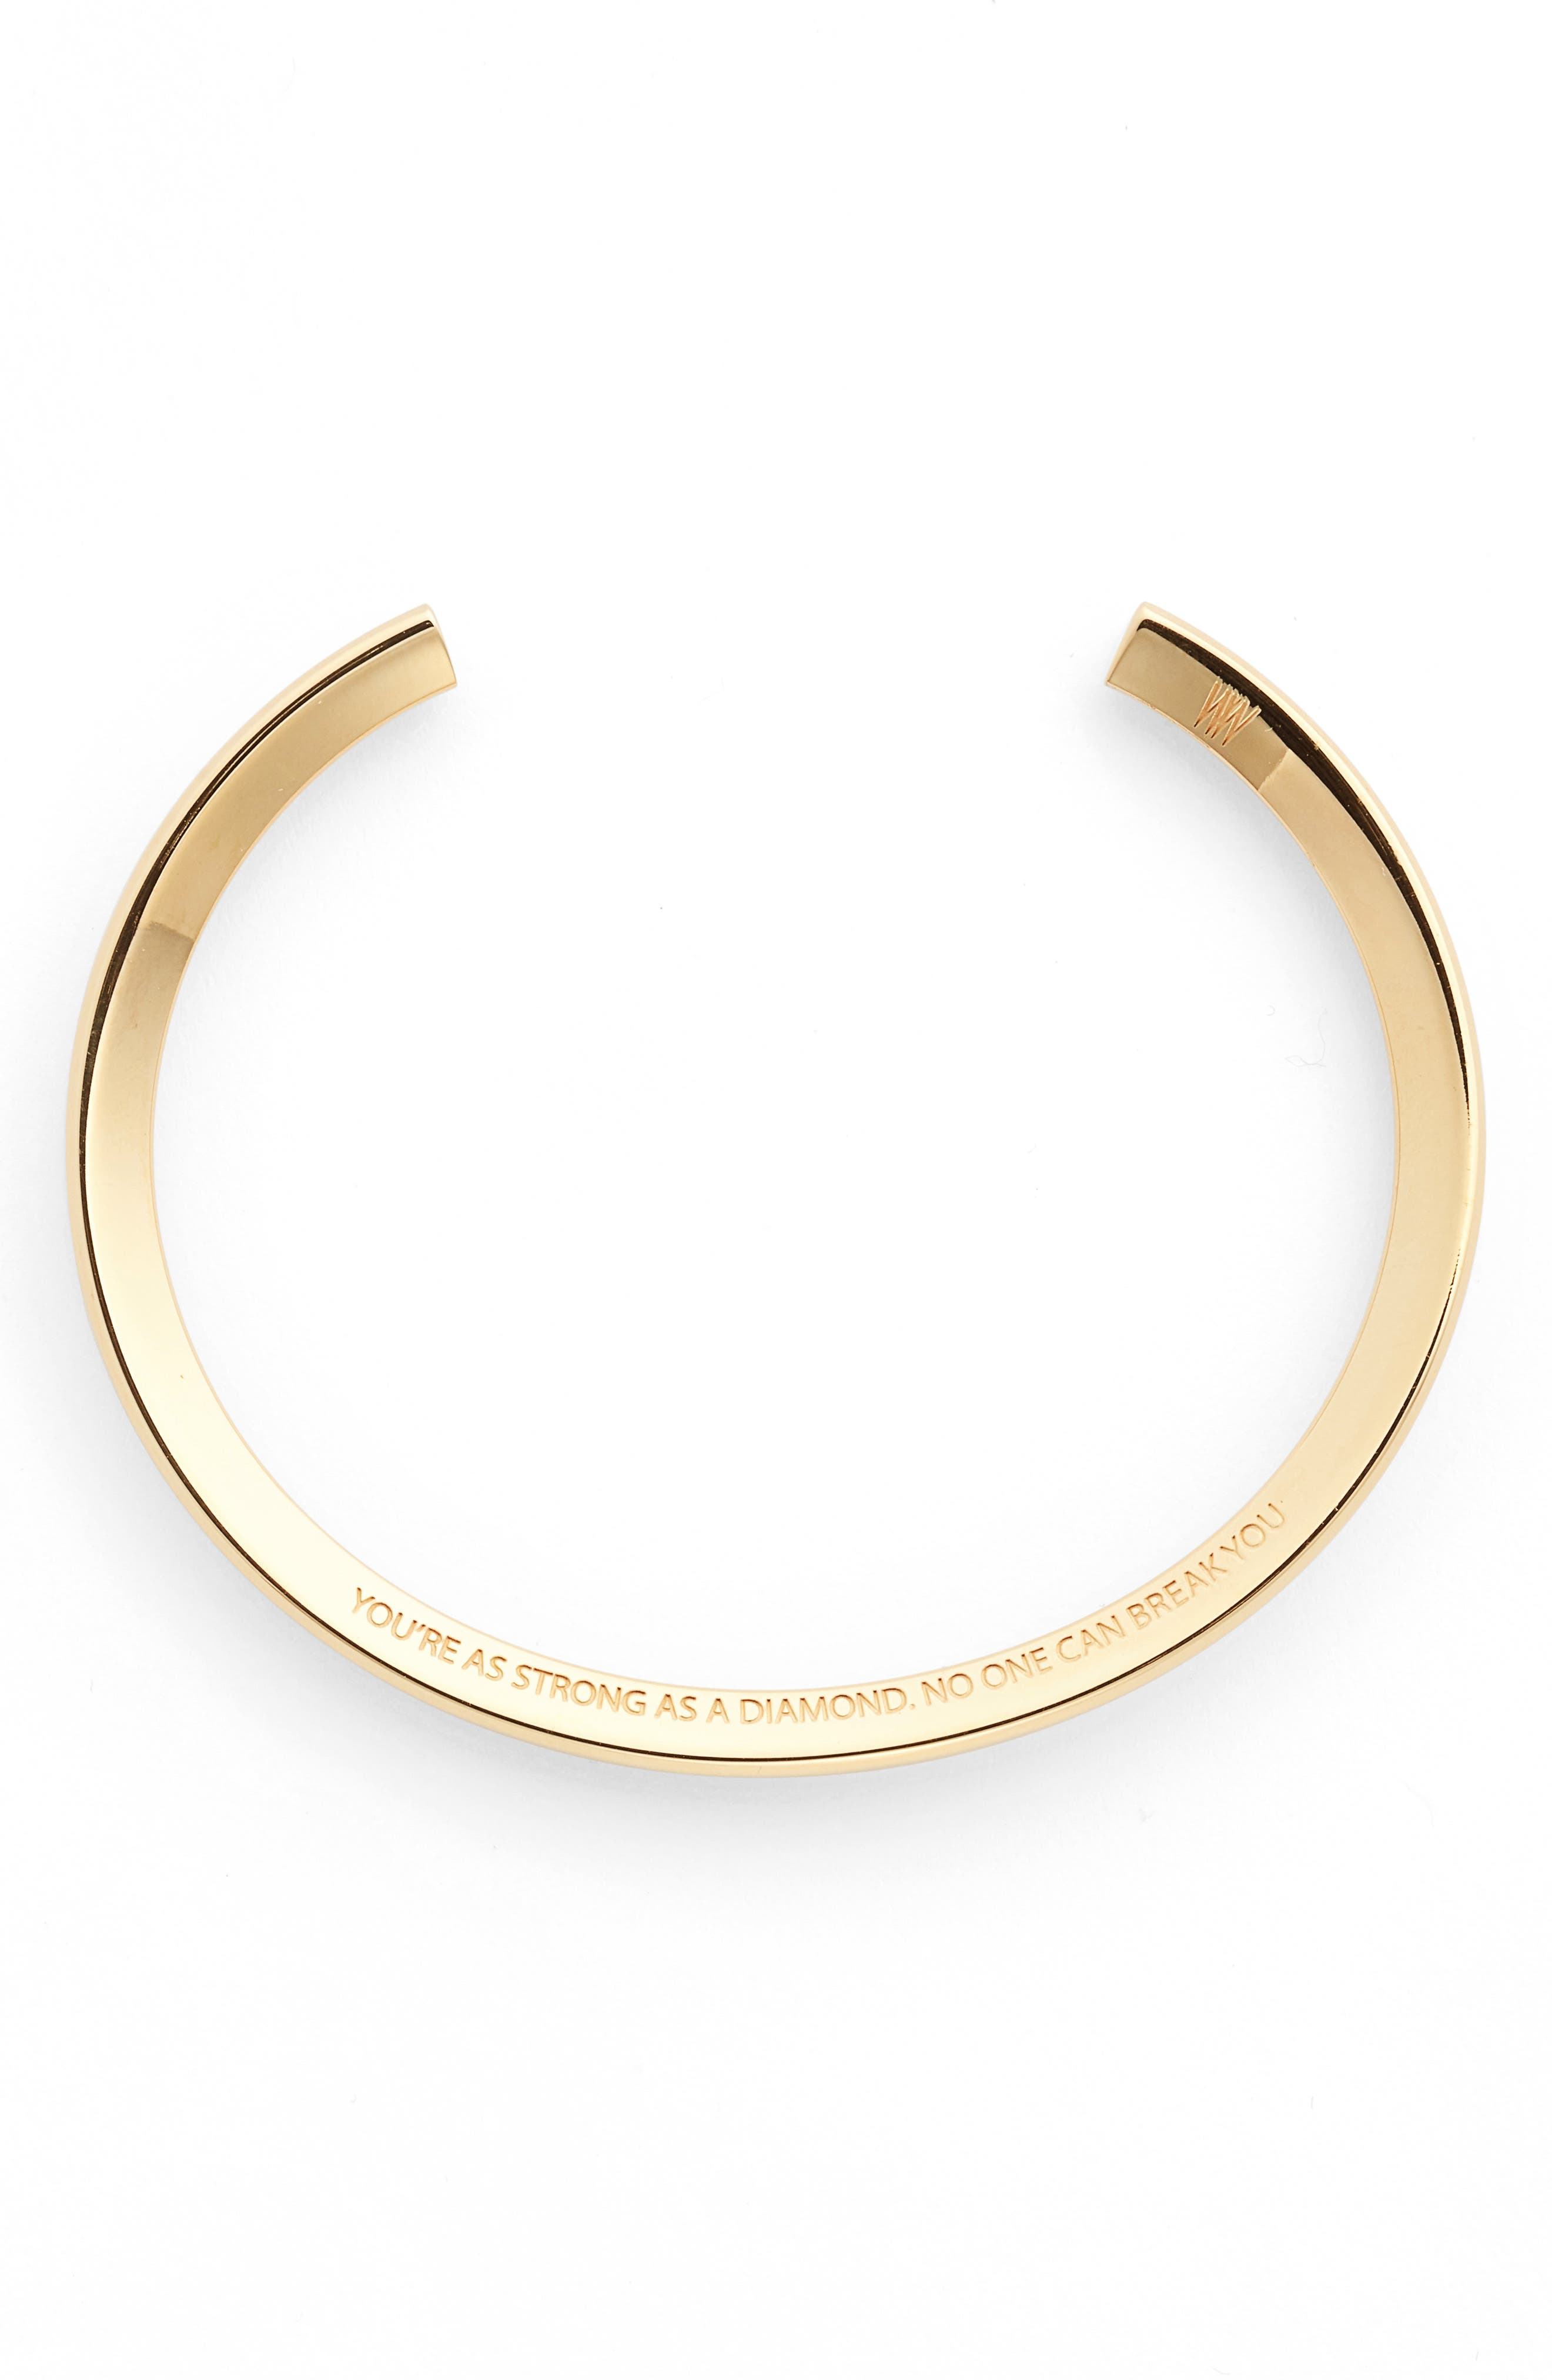 Stella Valle You're as Strong as a Diamond Cuff